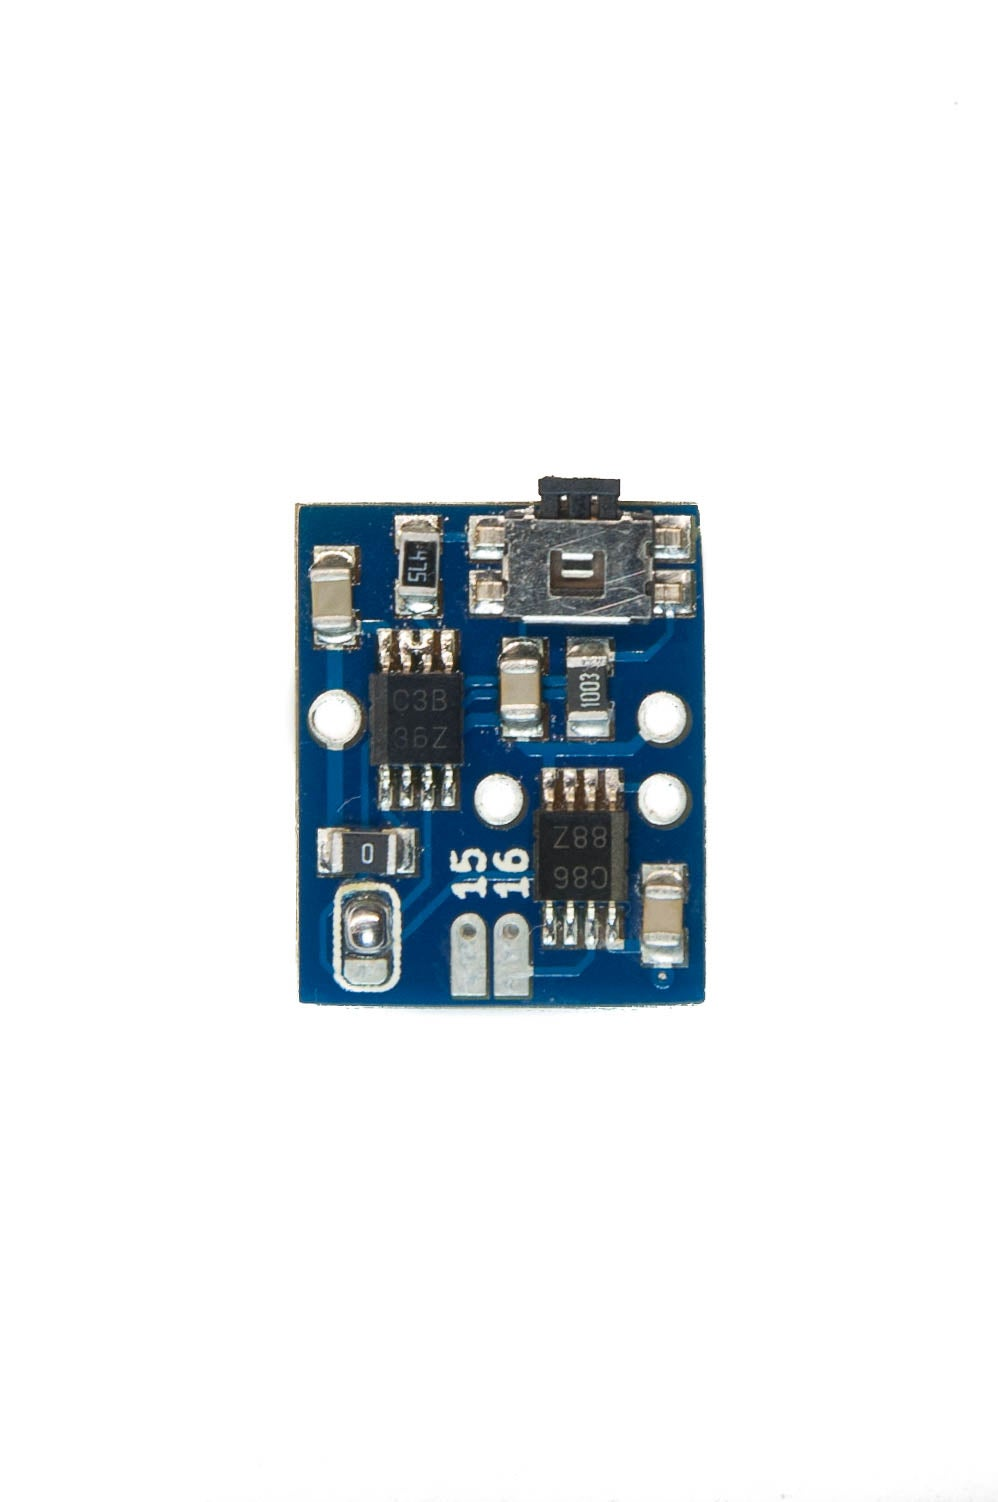 Identify Data, Ground, and Power Pads on Your Bi-vert Chip